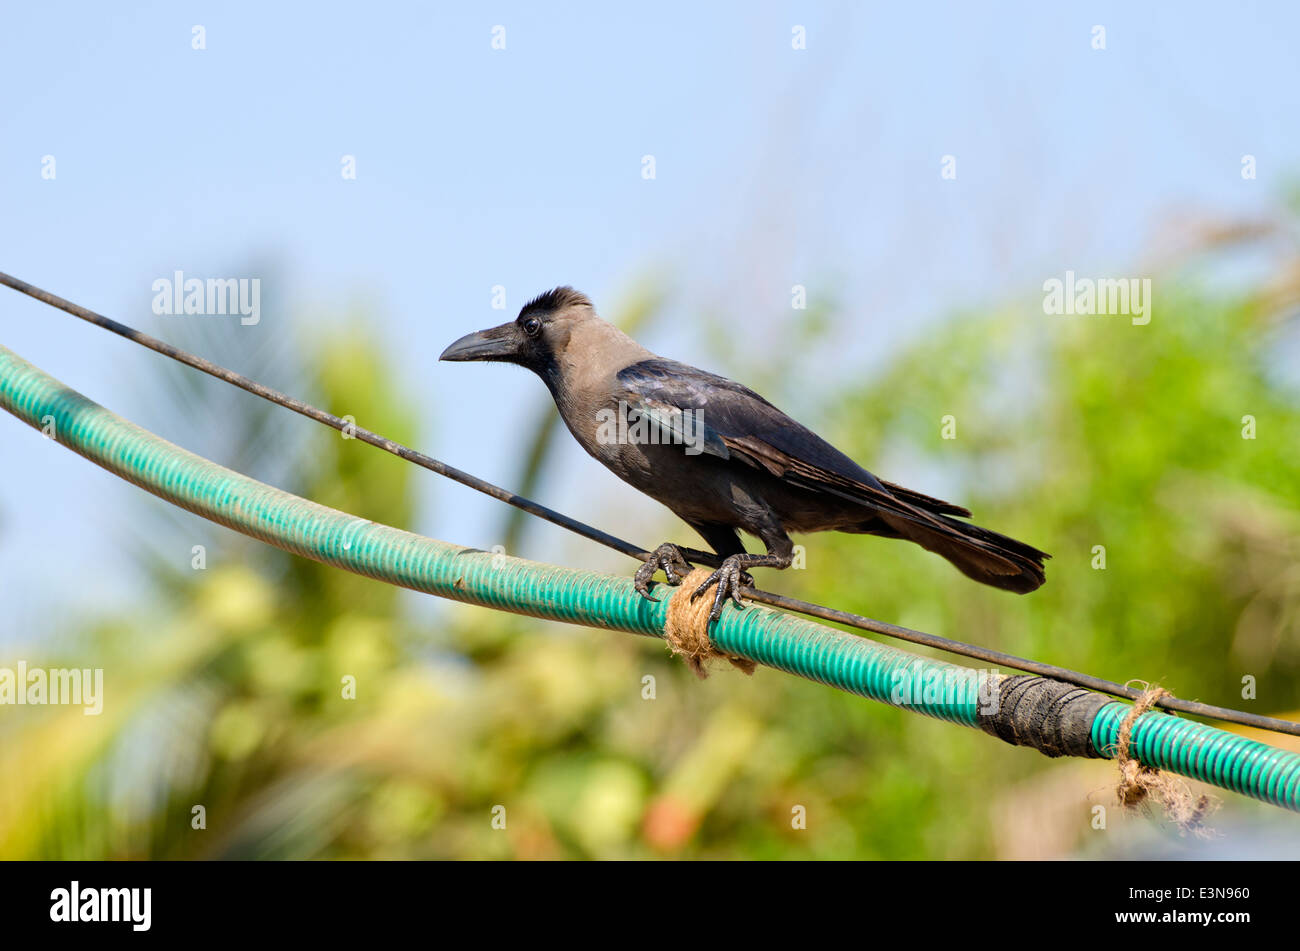 Cawing Stock Photos & Cawing Stock Images - Page 3 - Alamy